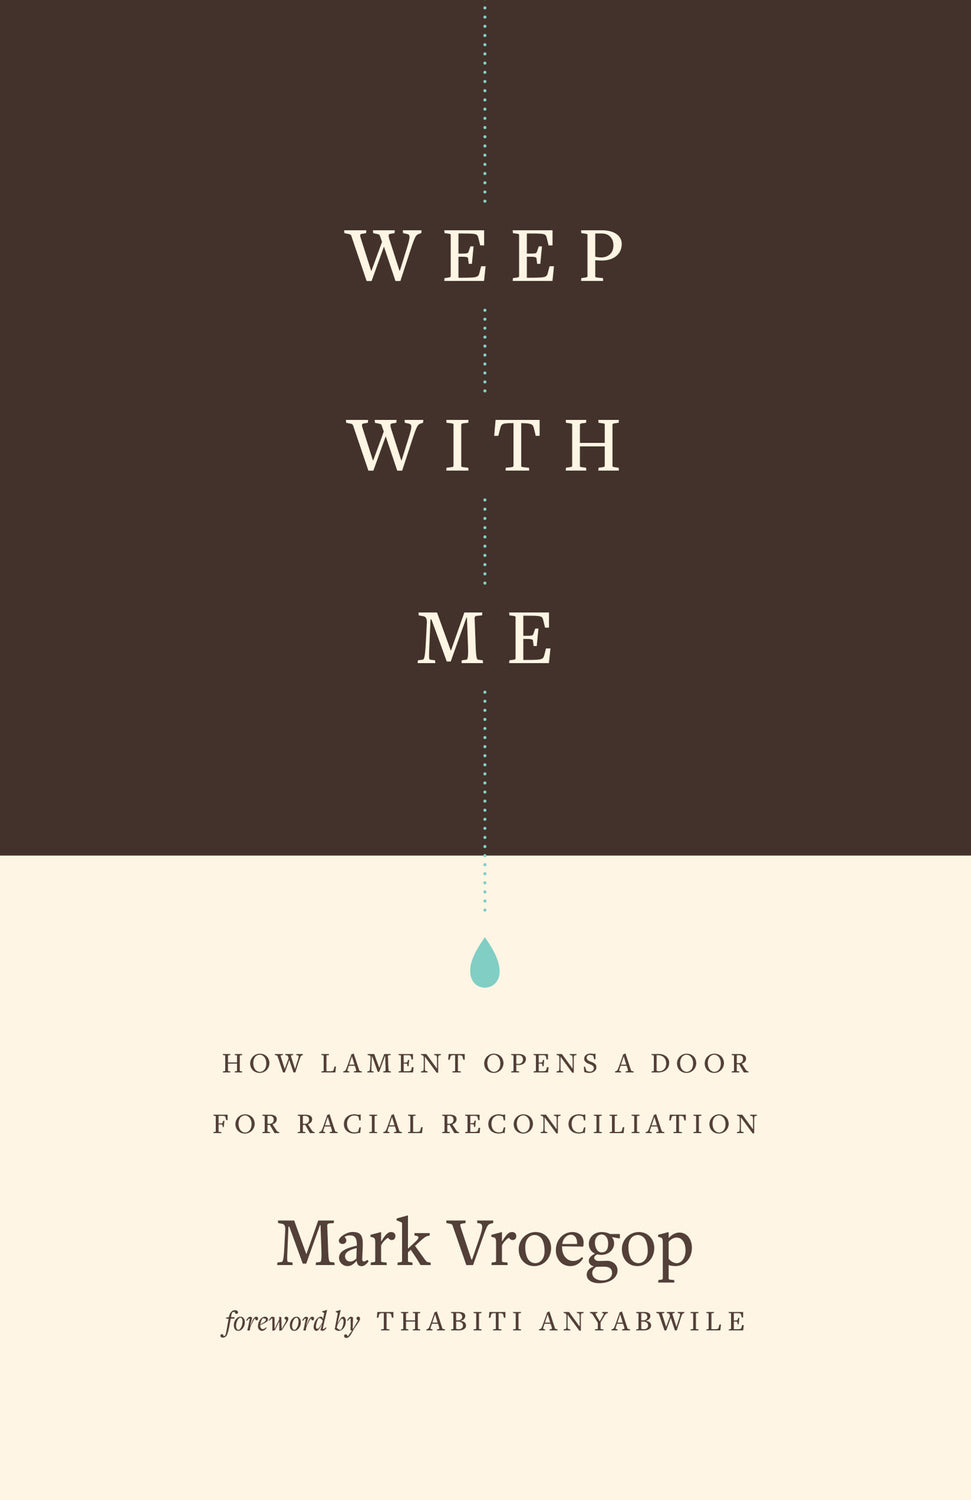 Weep with Me: How Lament Opens a Door for Racial Reconciliation - Vroegop, Mark; Anyabwile, Thabiti M (foreword by) - 9781433567599